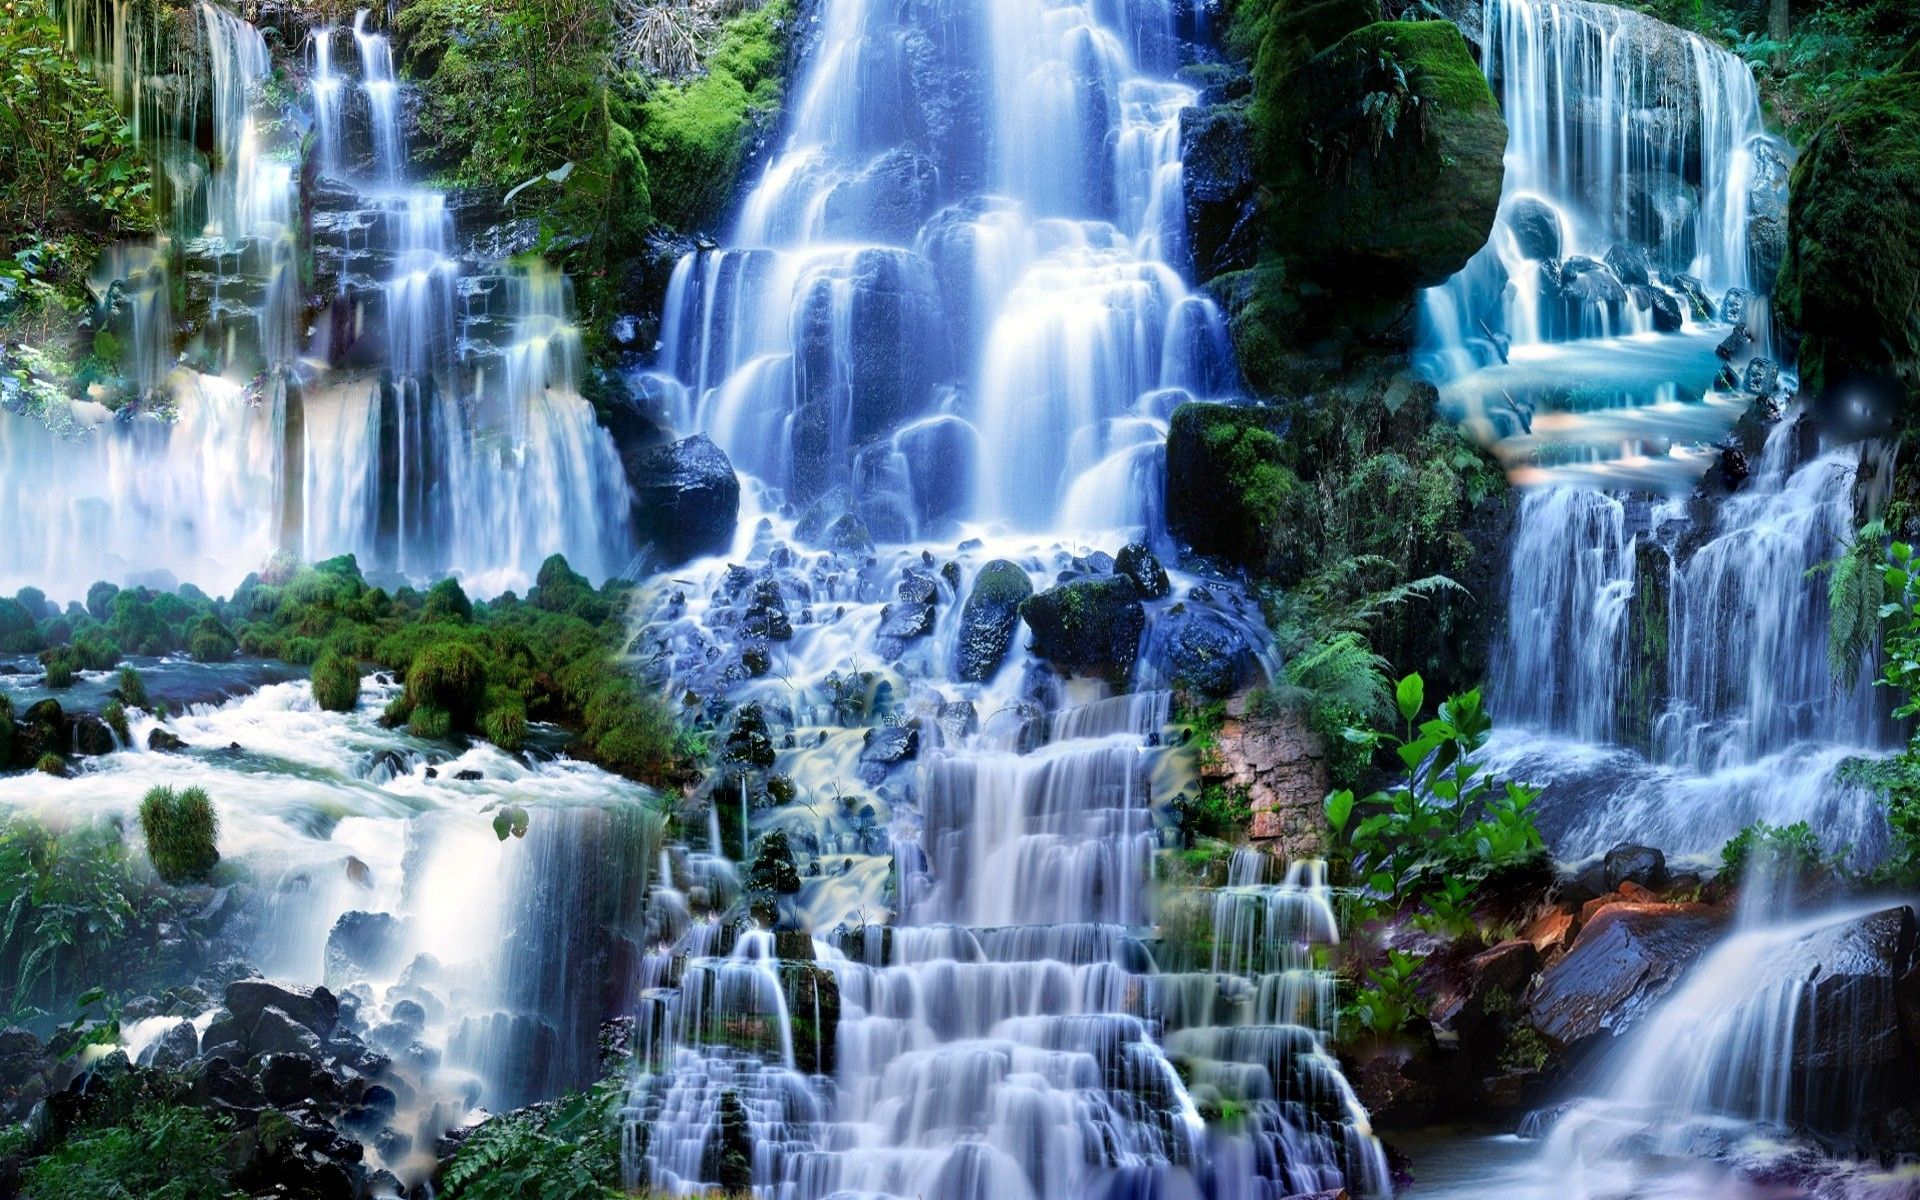 Tag Waterfalls Scenery Wallpapers Backgrounds Paos Images And Pictures For Free Keywords Scen